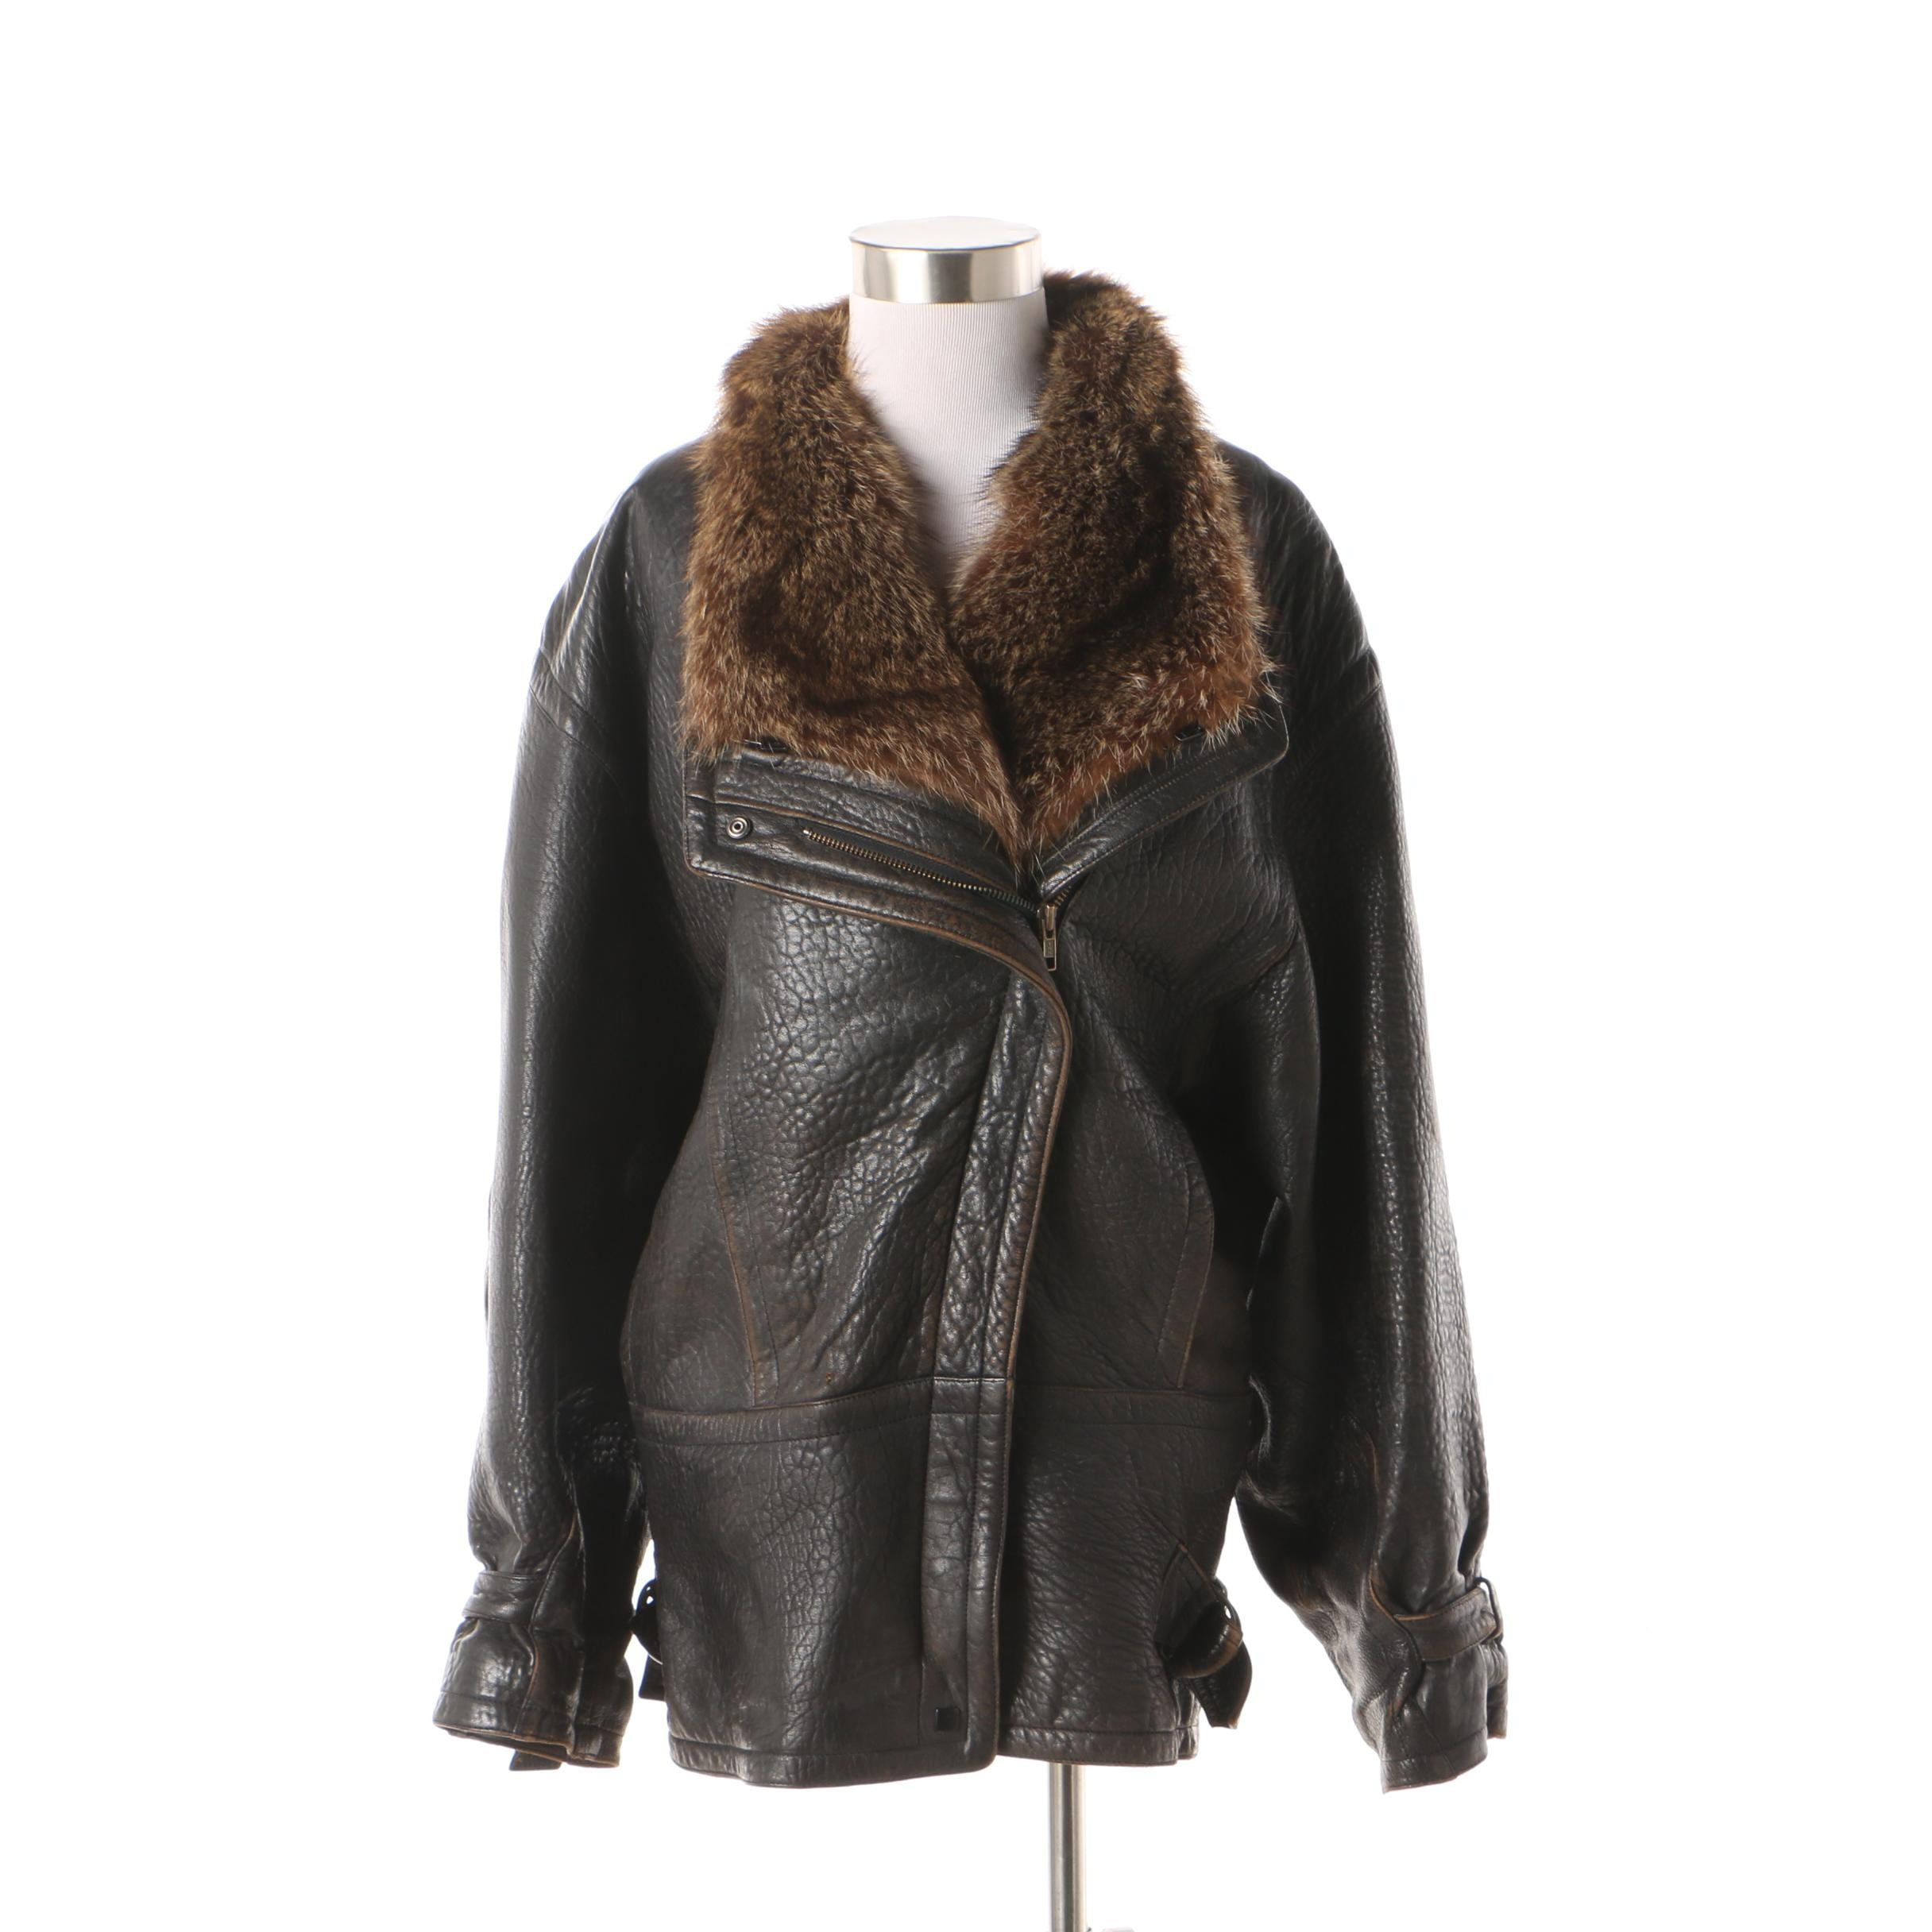 Marc Buchanan Pellé Pellé Distressed Leather Jacket with Raccoon Fur Collar